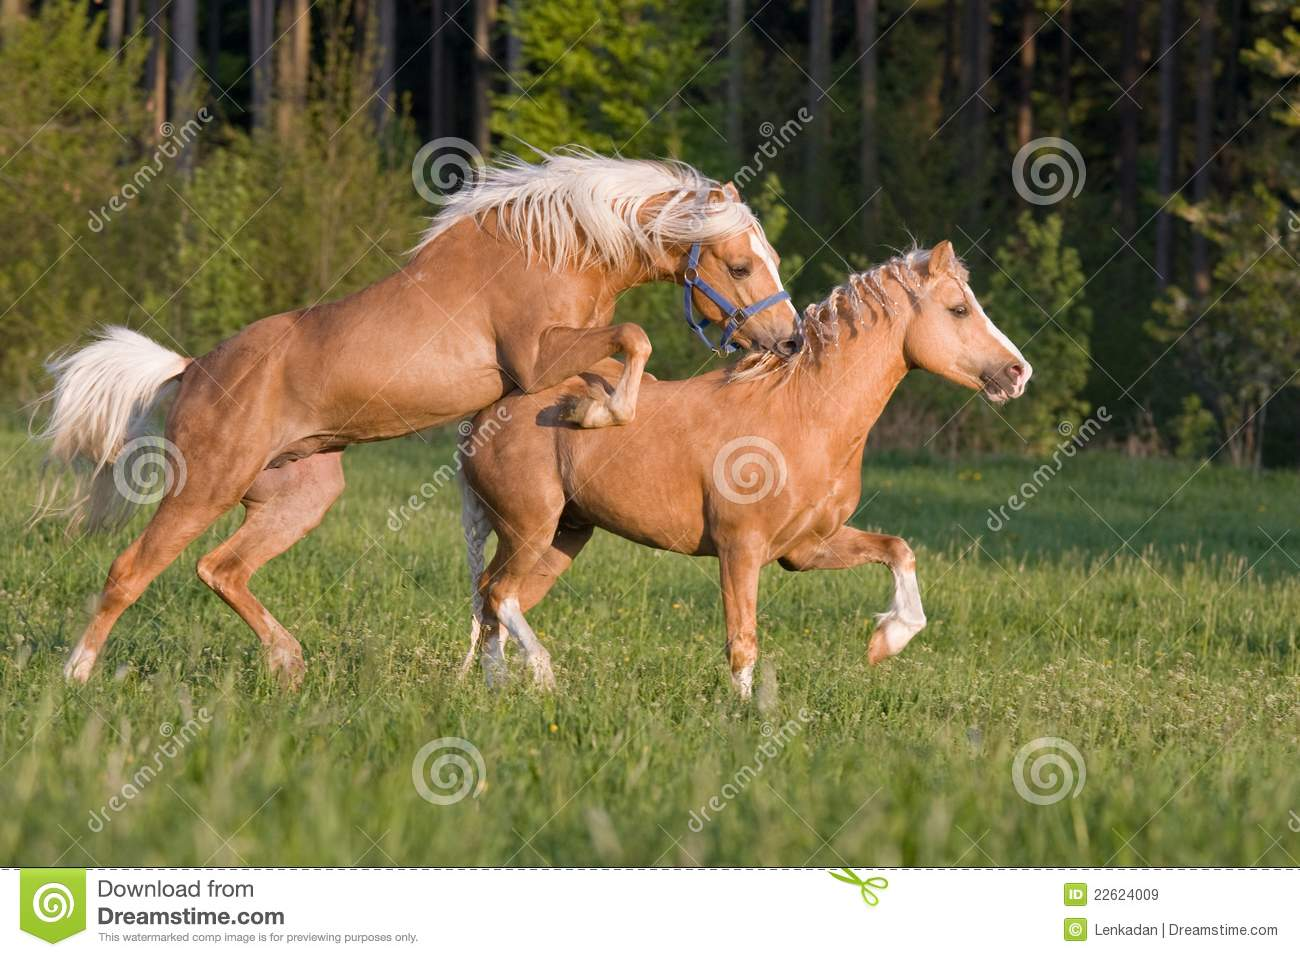 Animal Farm Wallpaper Fight Of Two Stallions Royalty Free Stock Images Image